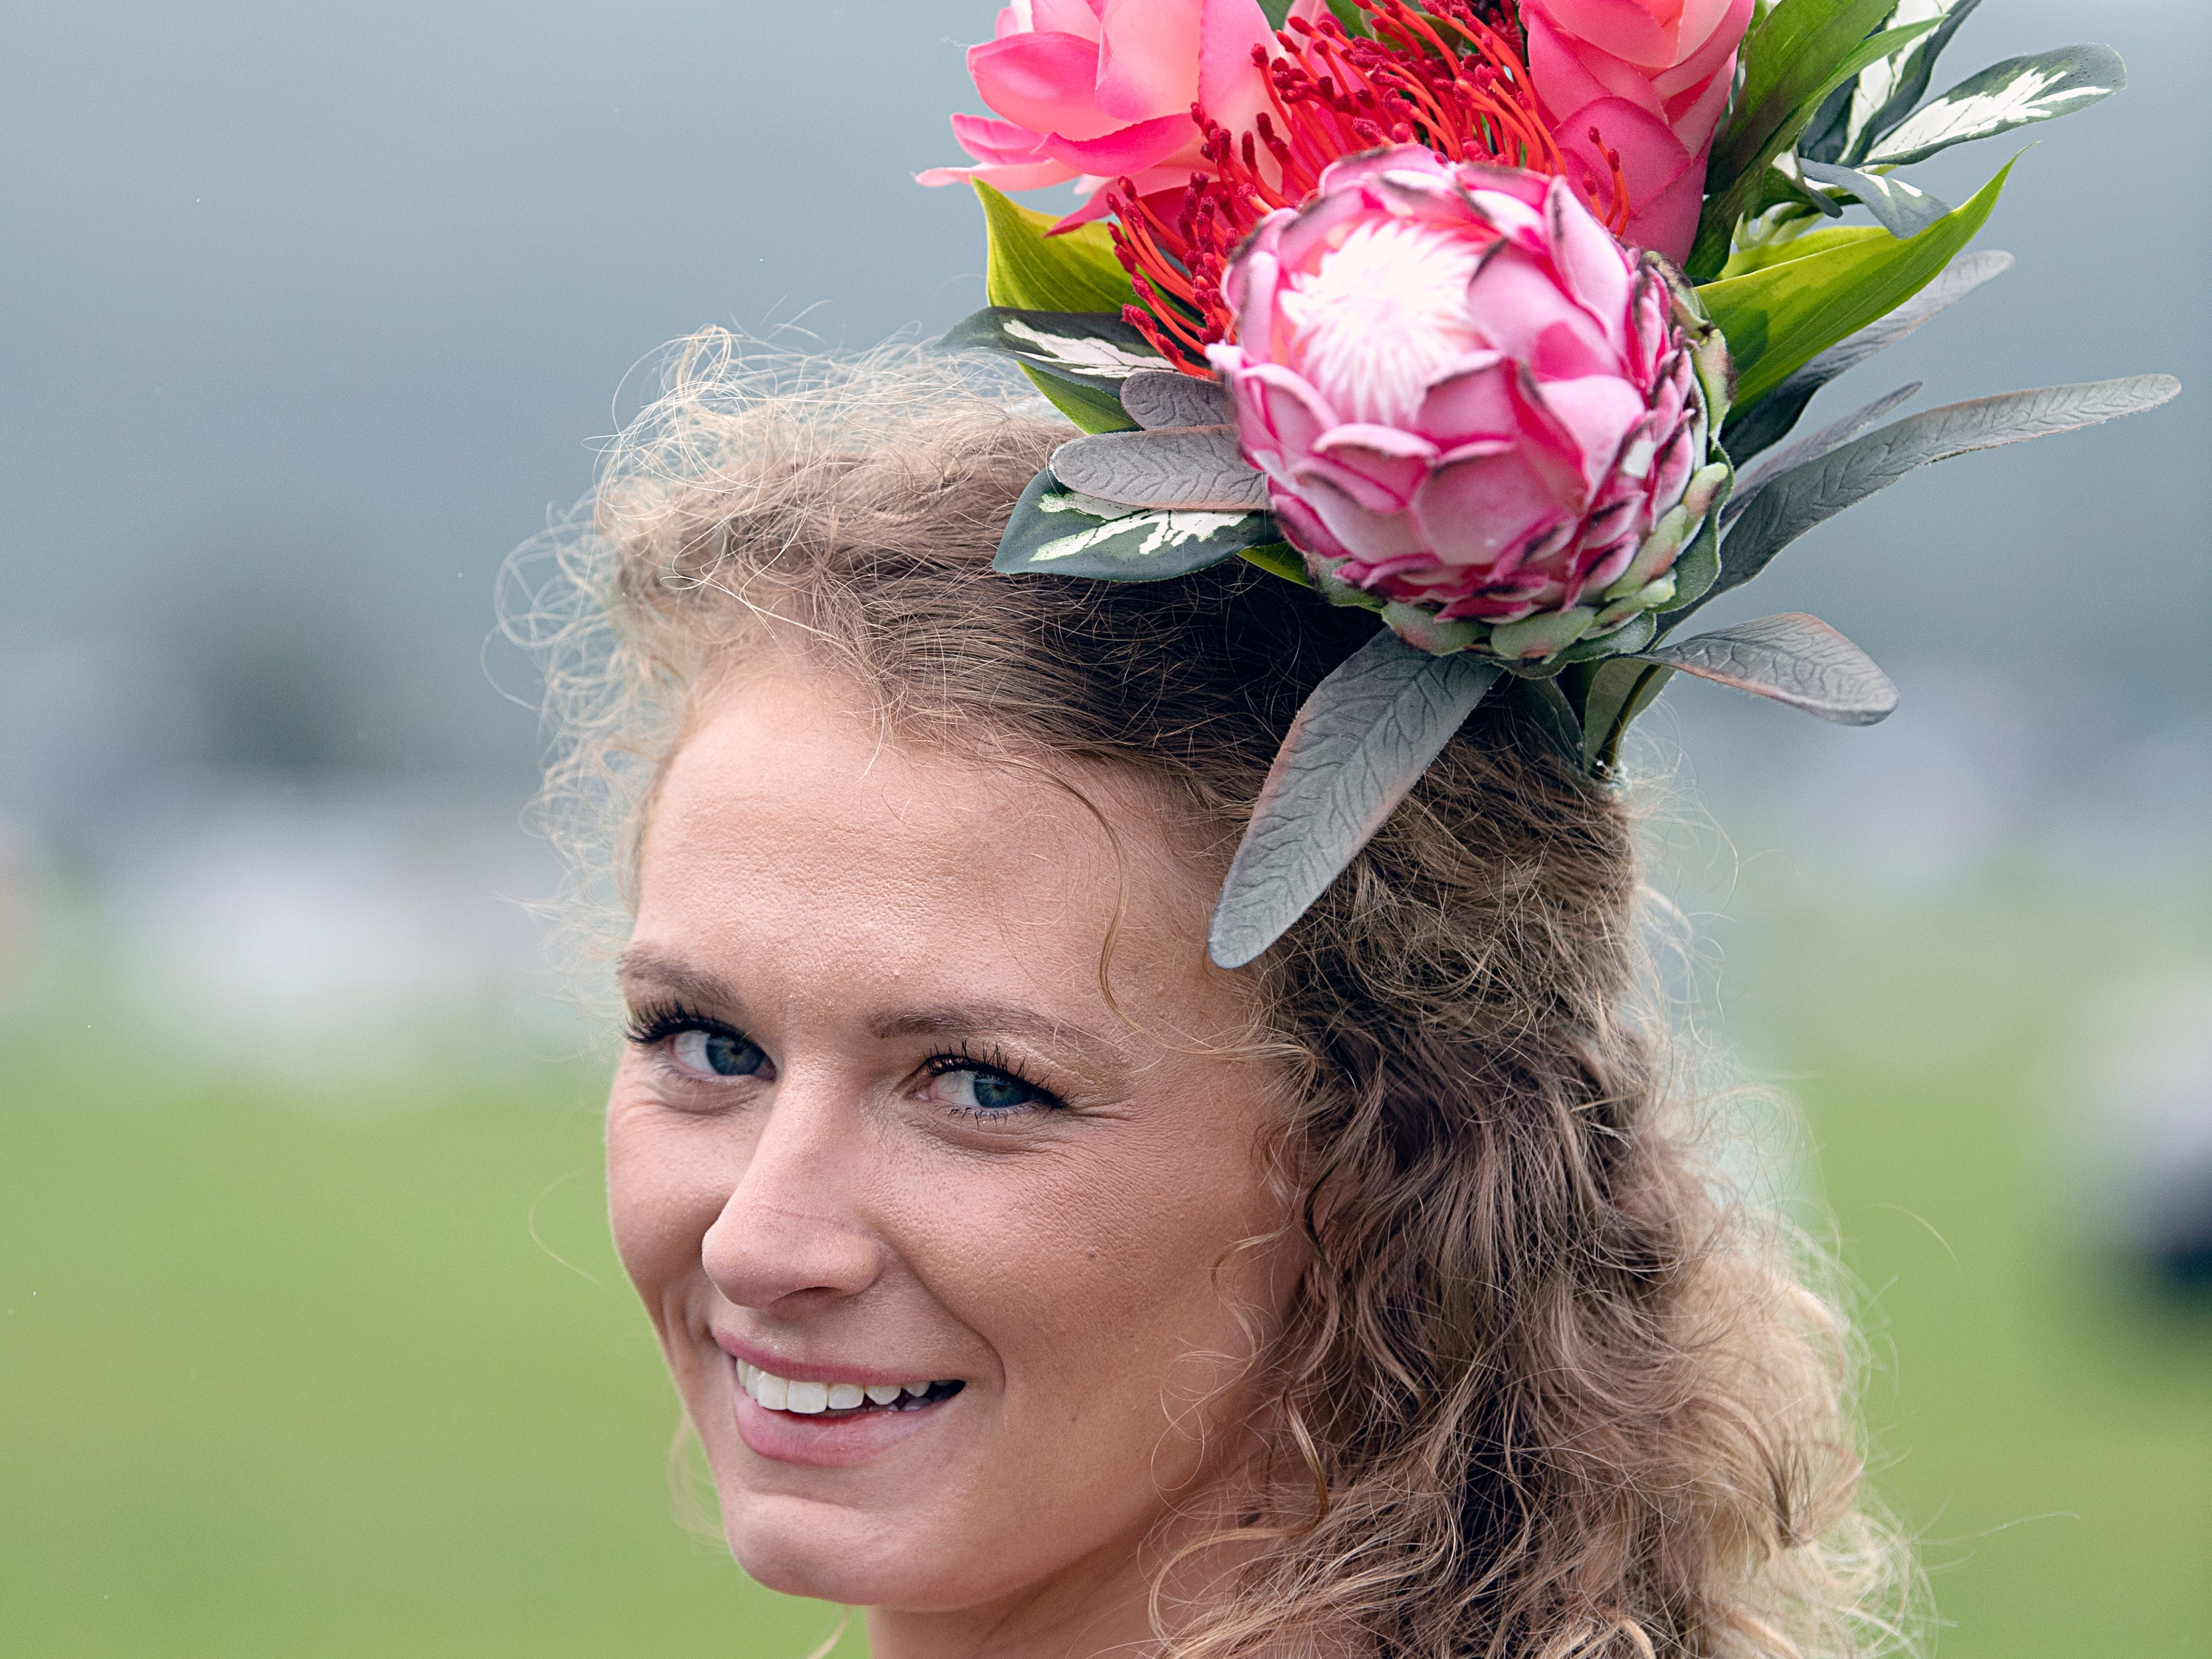 Evane Stoner handmade her fascinator for the 78th Iroquois Steeplechase at Percy Warner Park in Nashville on Saturday May 11, 2019.